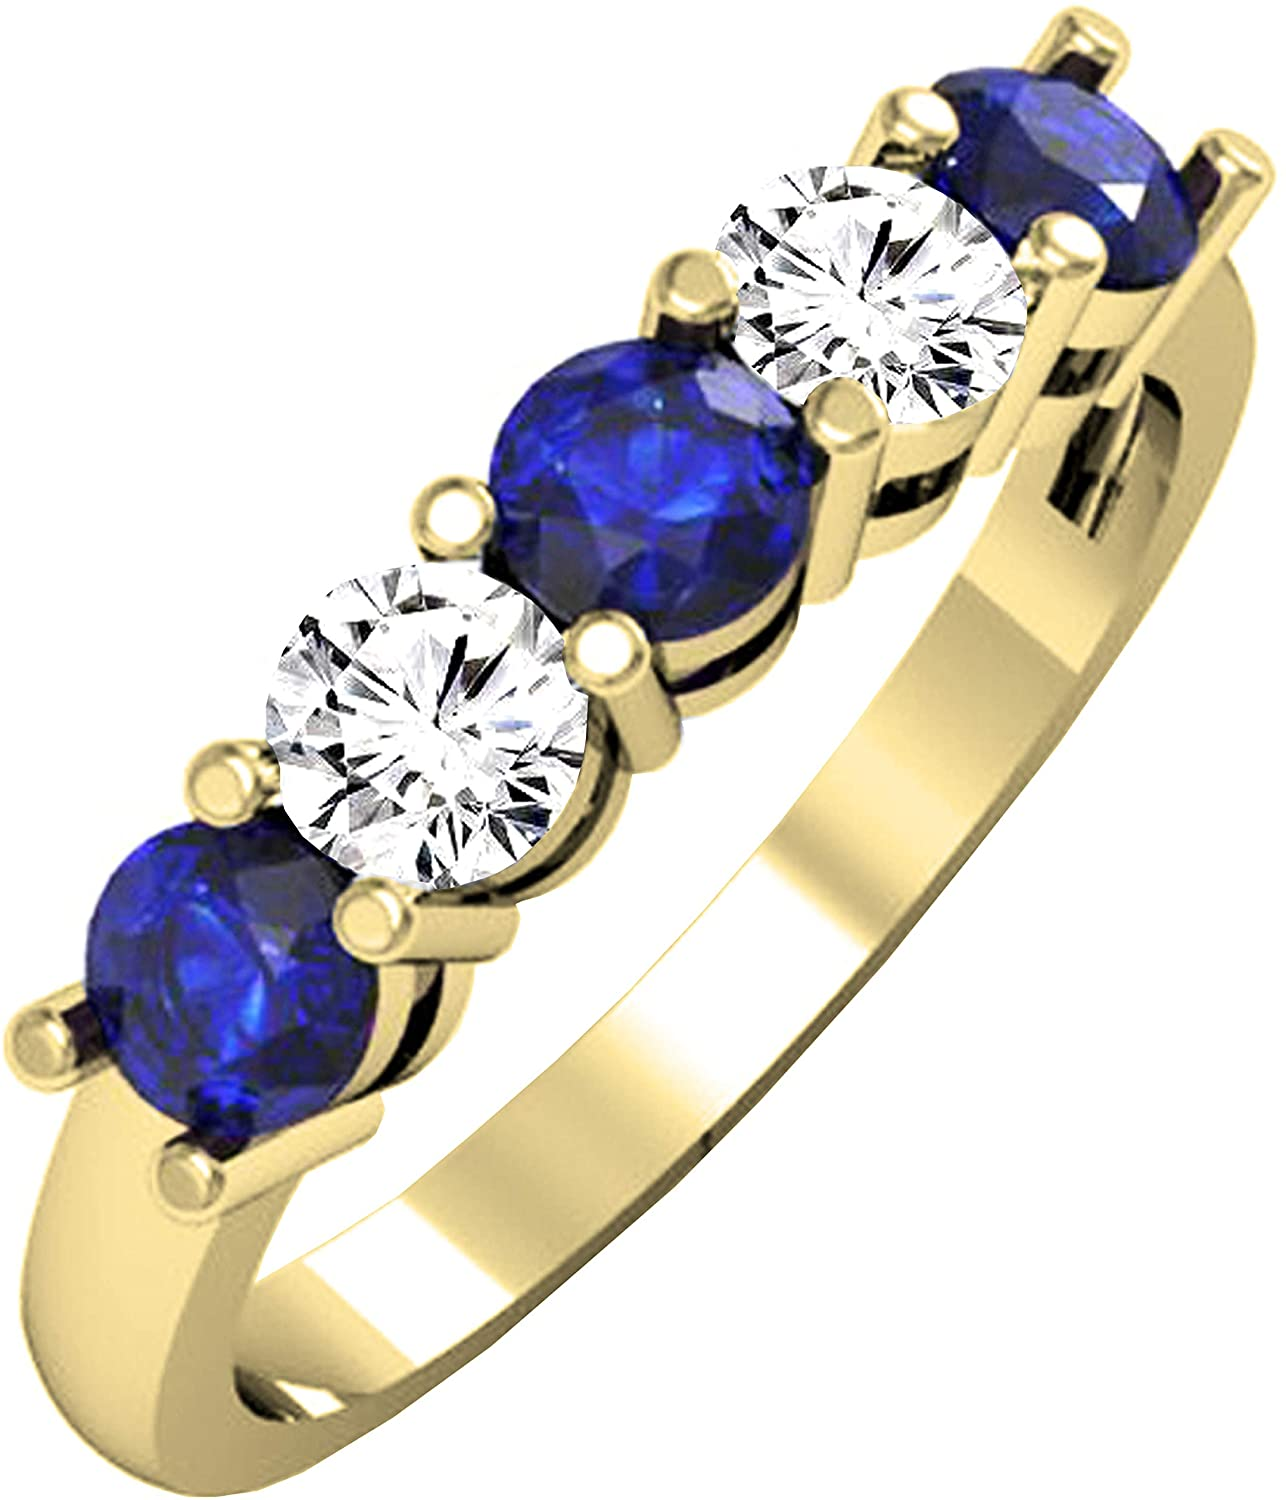 Dazzlingrock Collection Round Blue Sapphire and White Diamond Ladies Alternate 5 Stone Anniversary Wedding Band, Available in 10K/14K/18K Gold